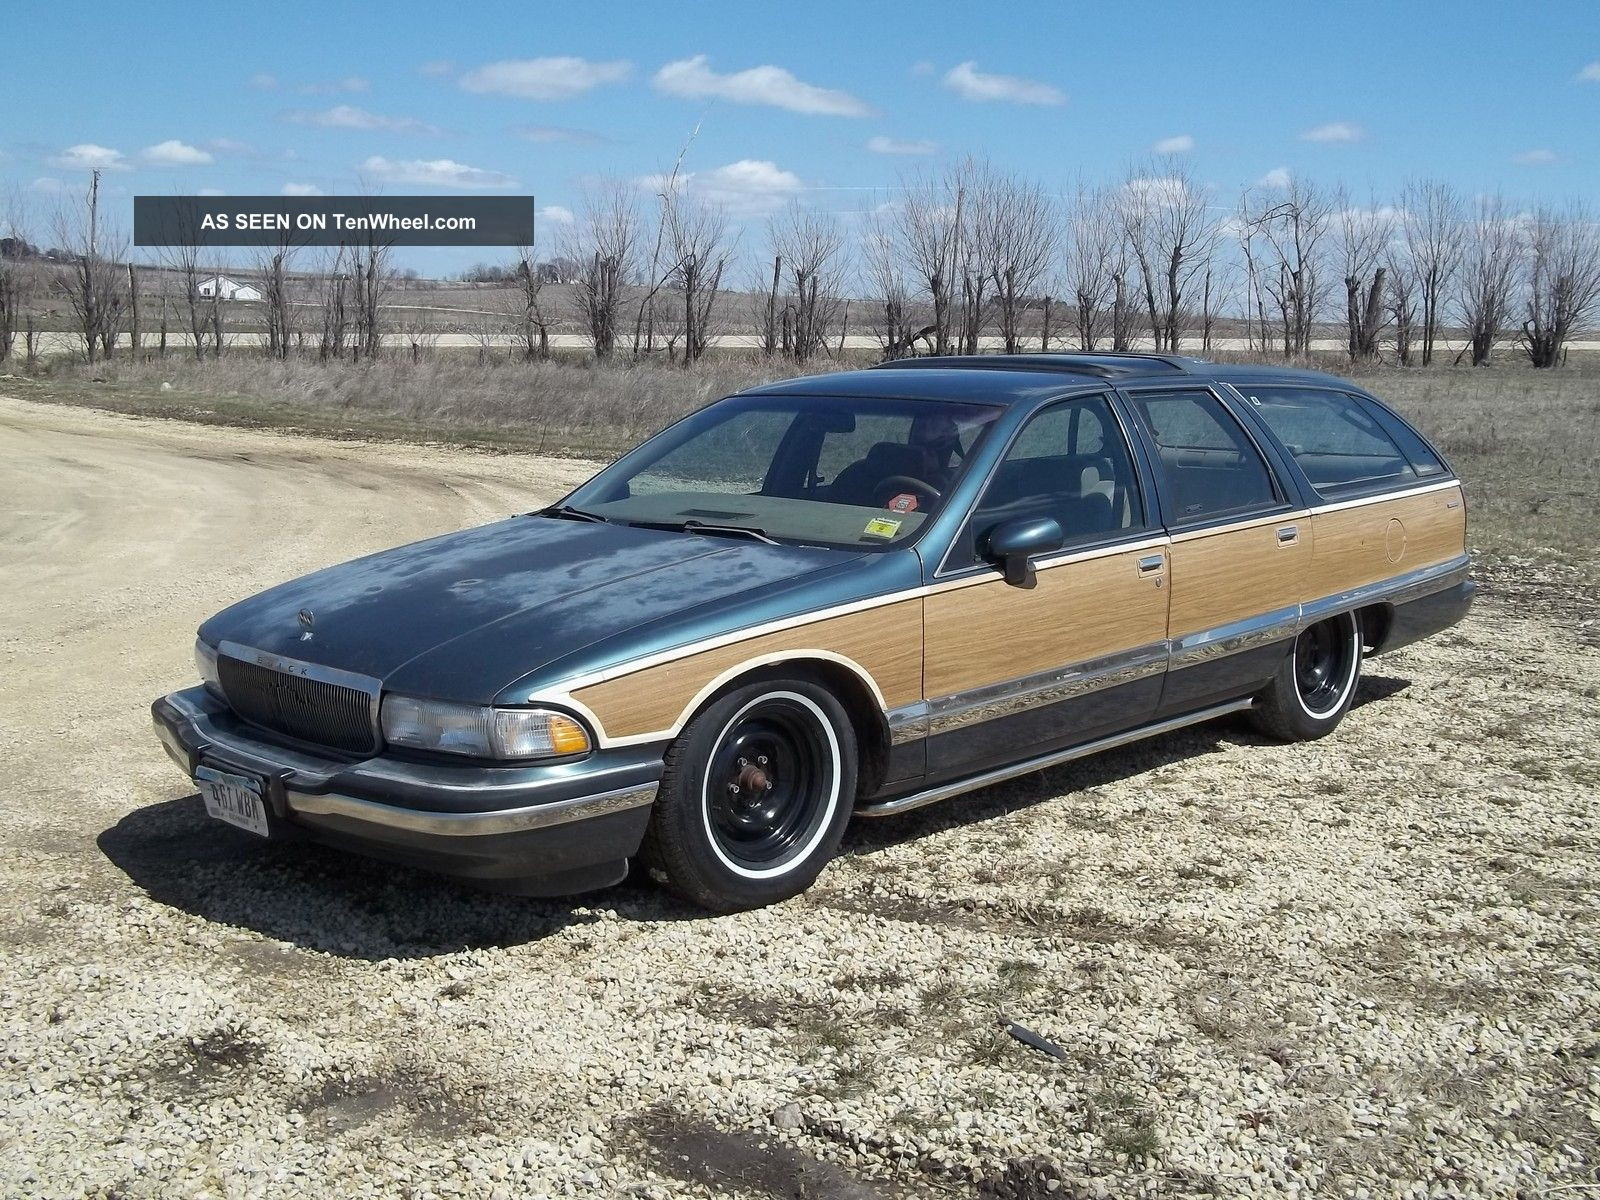 1993 buick roadmaster estate wagon 3rd row seats mild custom belltech spindles. Black Bedroom Furniture Sets. Home Design Ideas